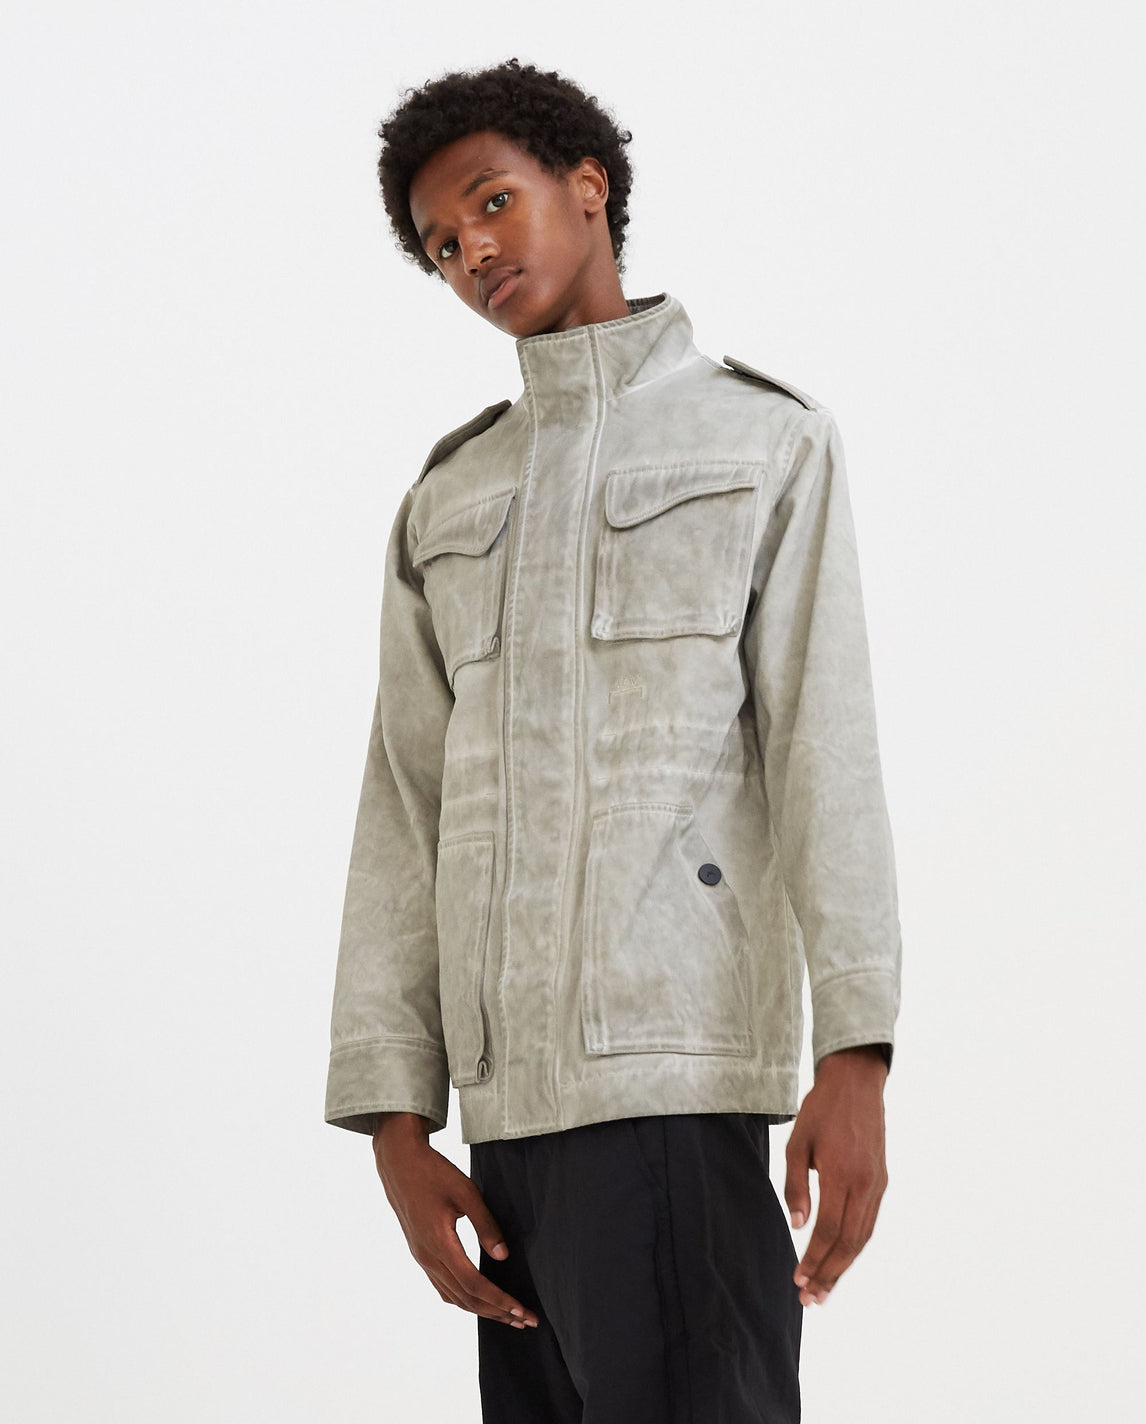 Fade-Out Field Jacket - Stone MENS A-COLD-WALL*